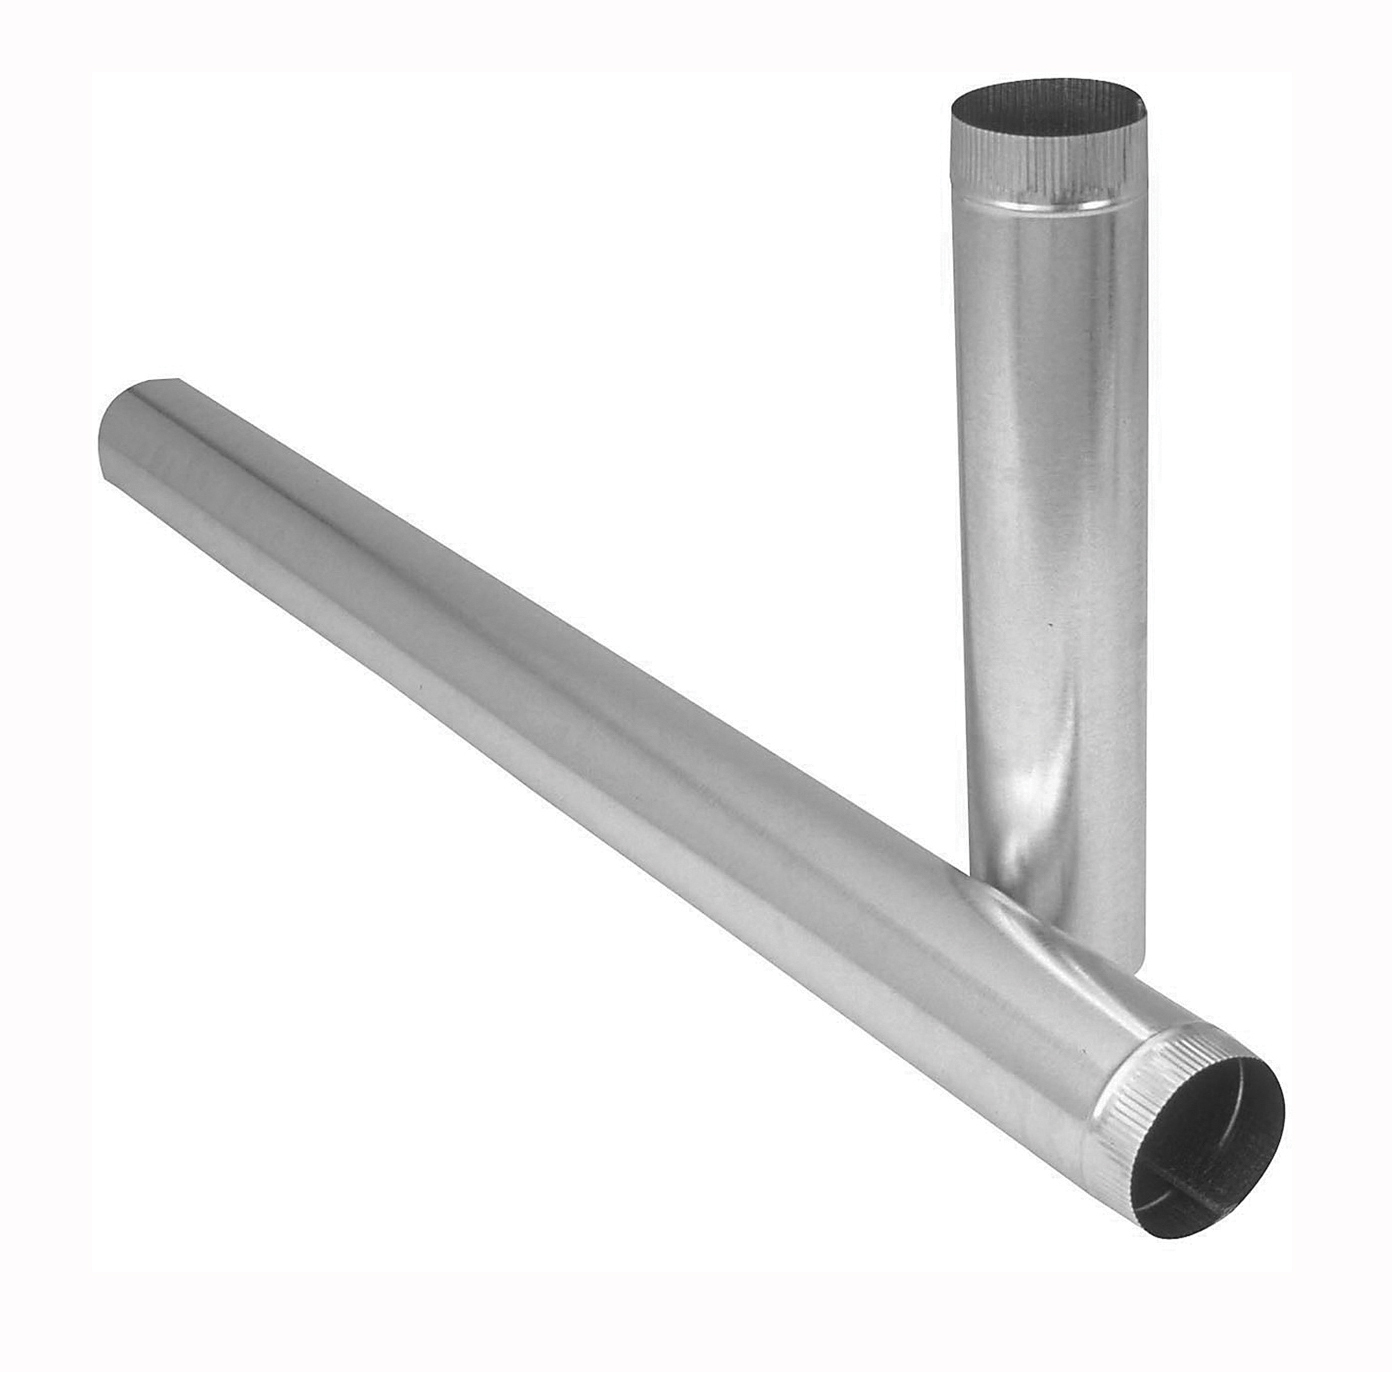 Picture of Imperial GV0394 Duct Pipe, 7 in Dia, 24 in L, 26 Gauge, Galvanized Steel, Galvanized